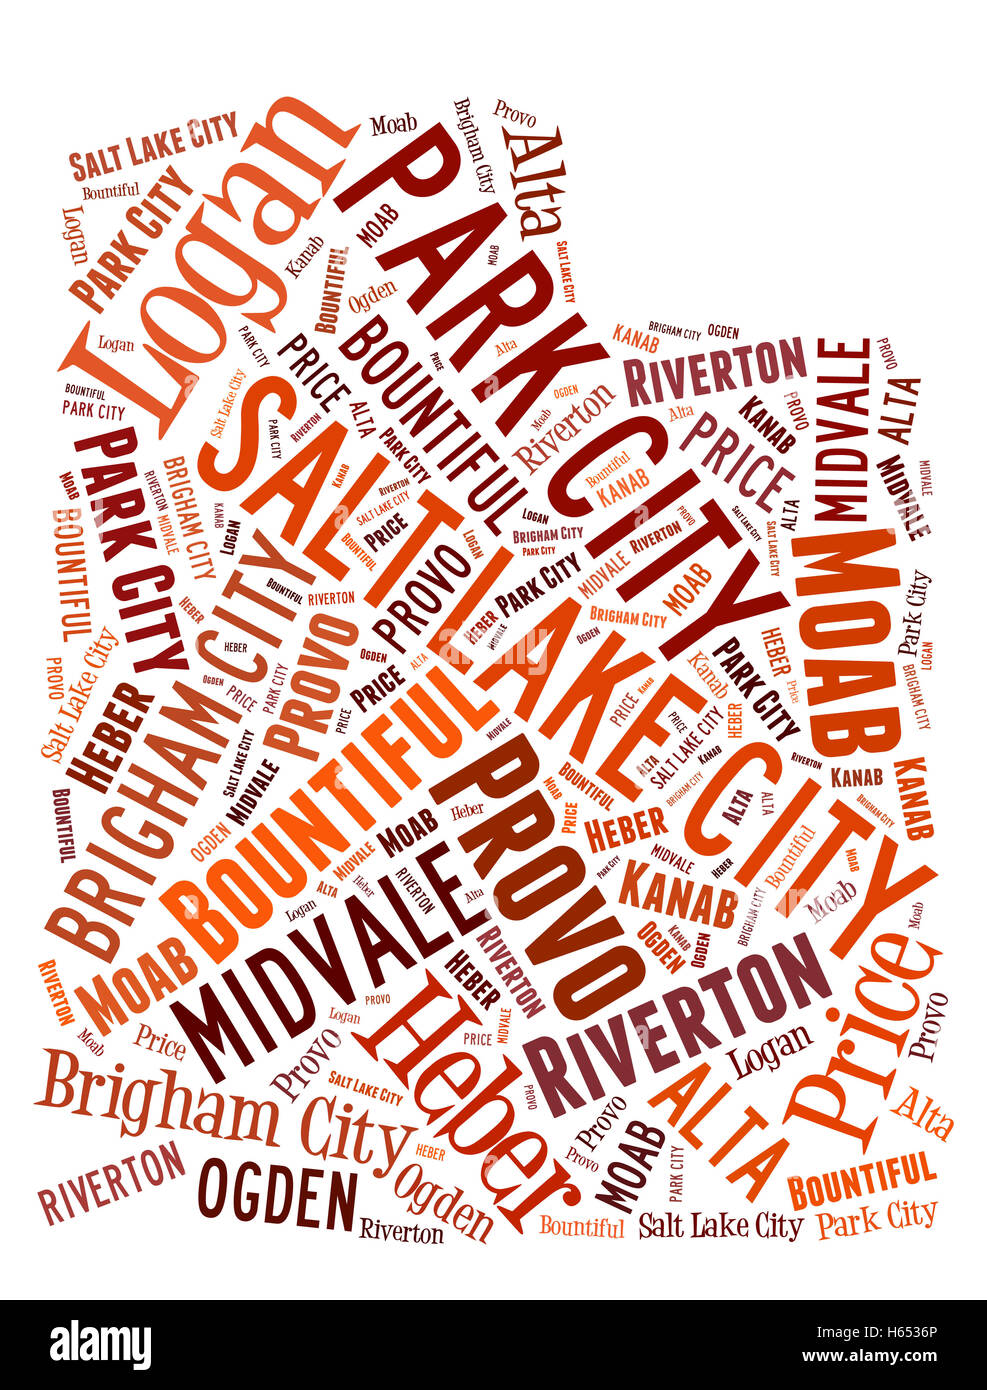 Word Cloud showing various cities in the state of Utah - Stock Image